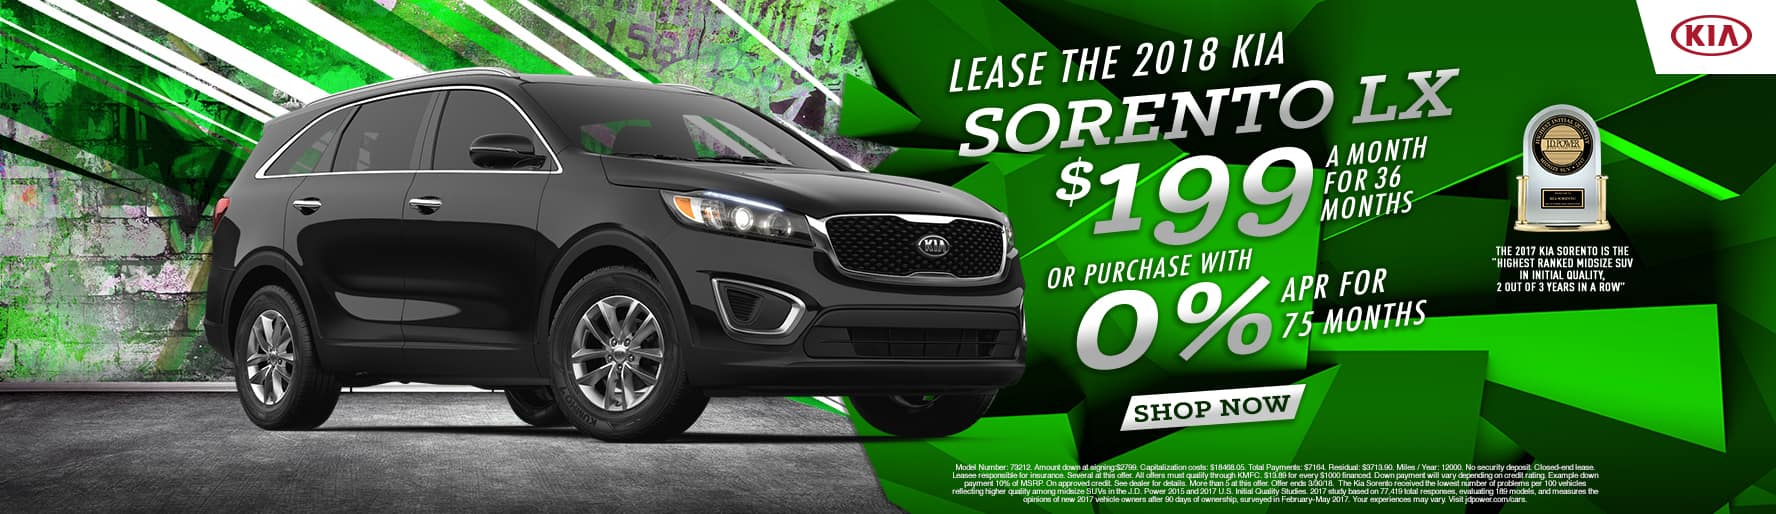 2018-sorento-lx-for-199-per-month-for-36-months-or-zero-percent-apr-for-75-months